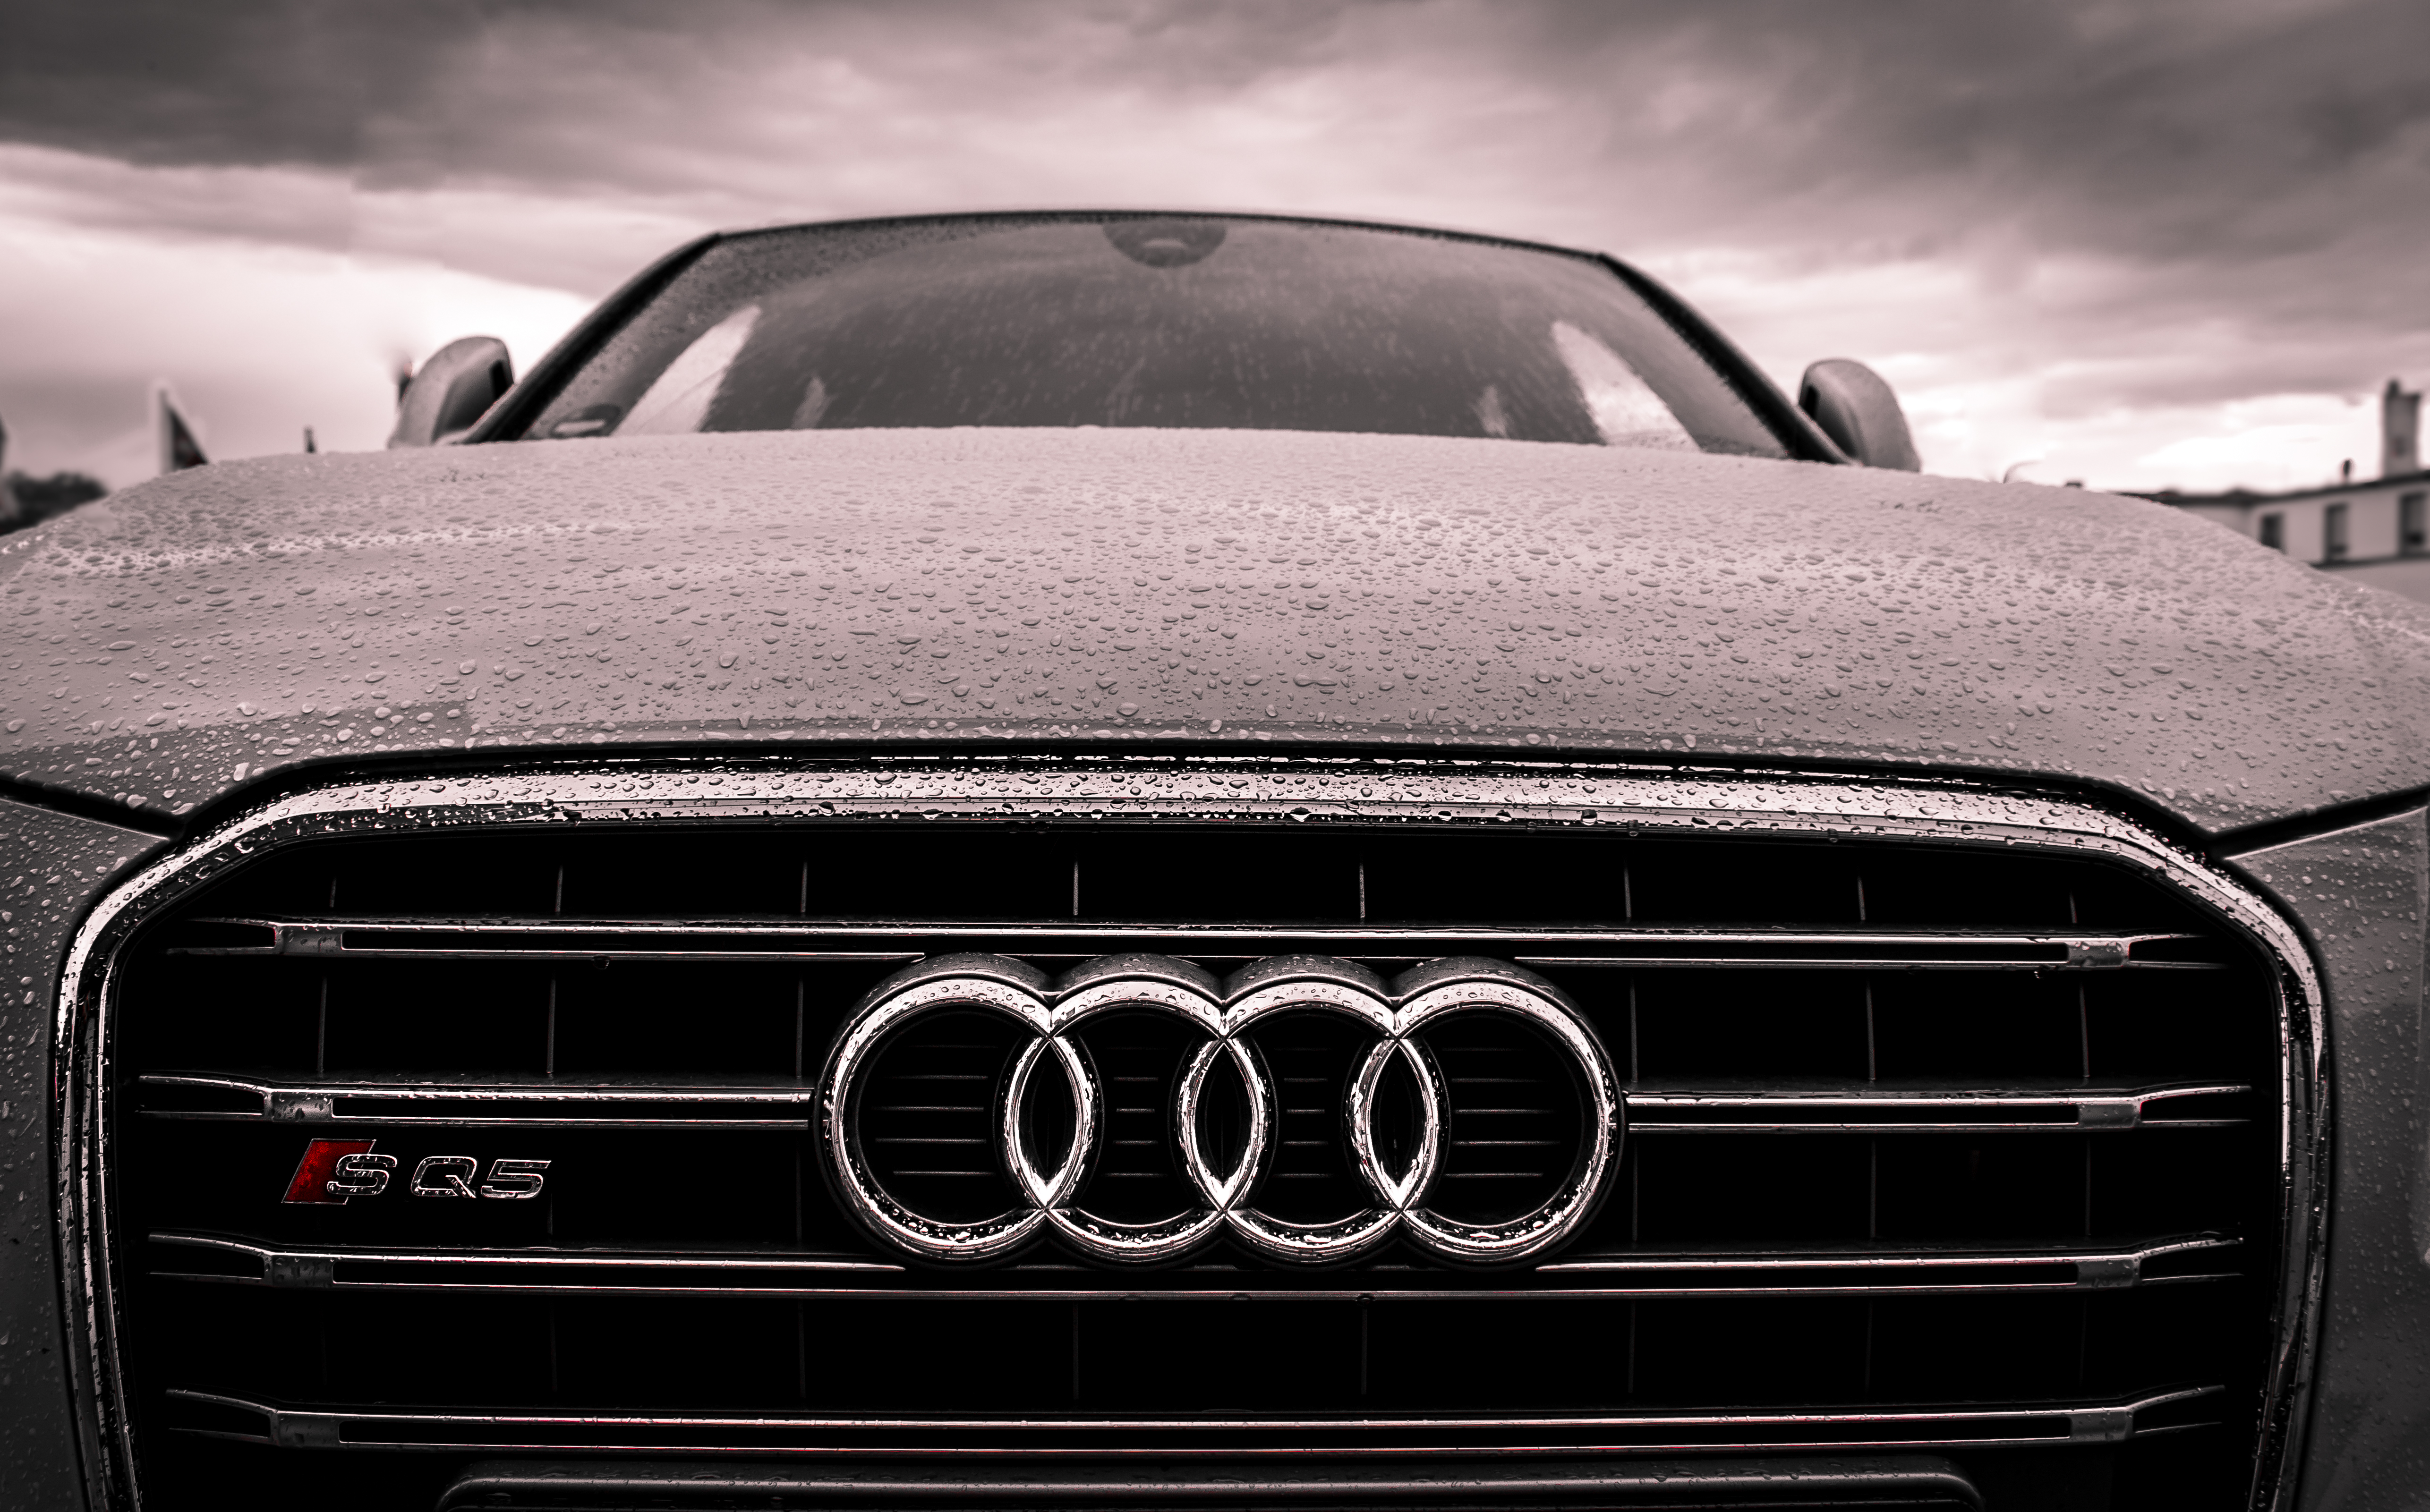 Audi Black And Chrome Grille Free Stock Photo